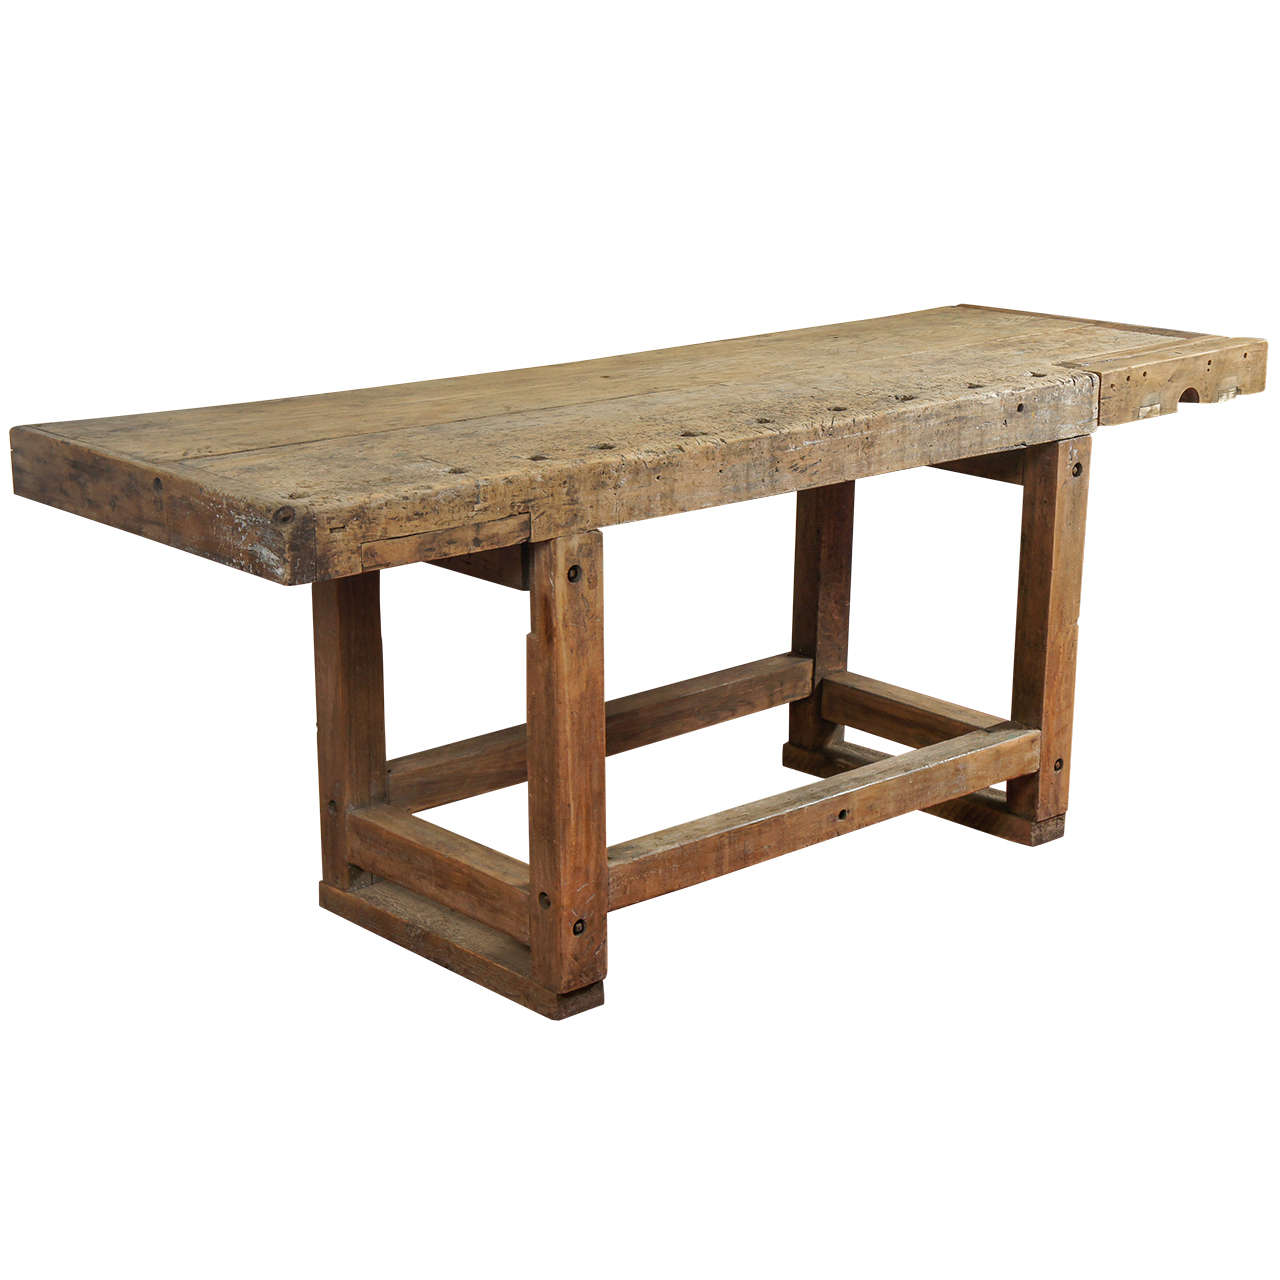 kitchen workbench traveling industrial island table at 1stdibs for sale